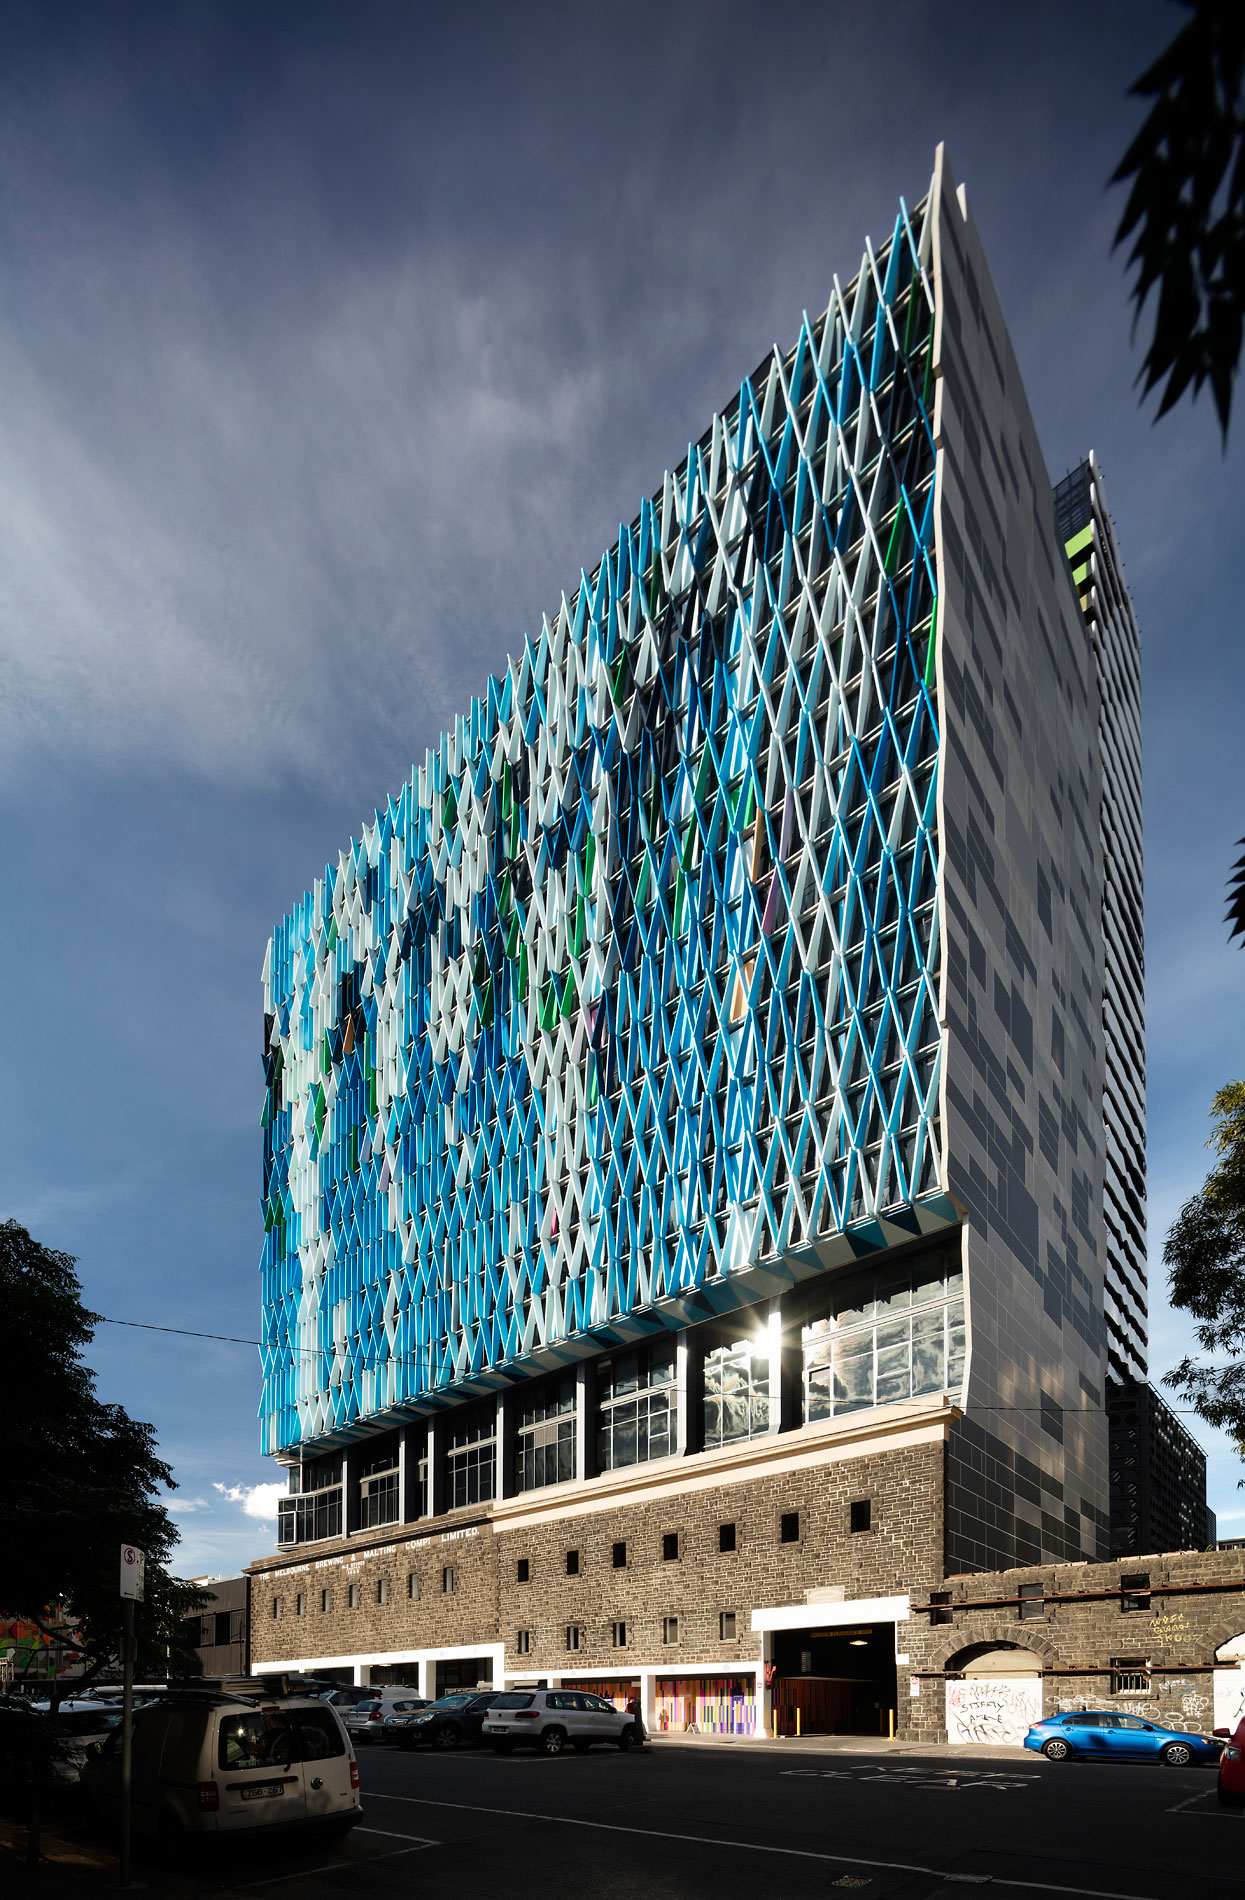 Bouverie Street Apartments, Melbourne, studio505, Grocon, Probuild, Alucobond PLUS